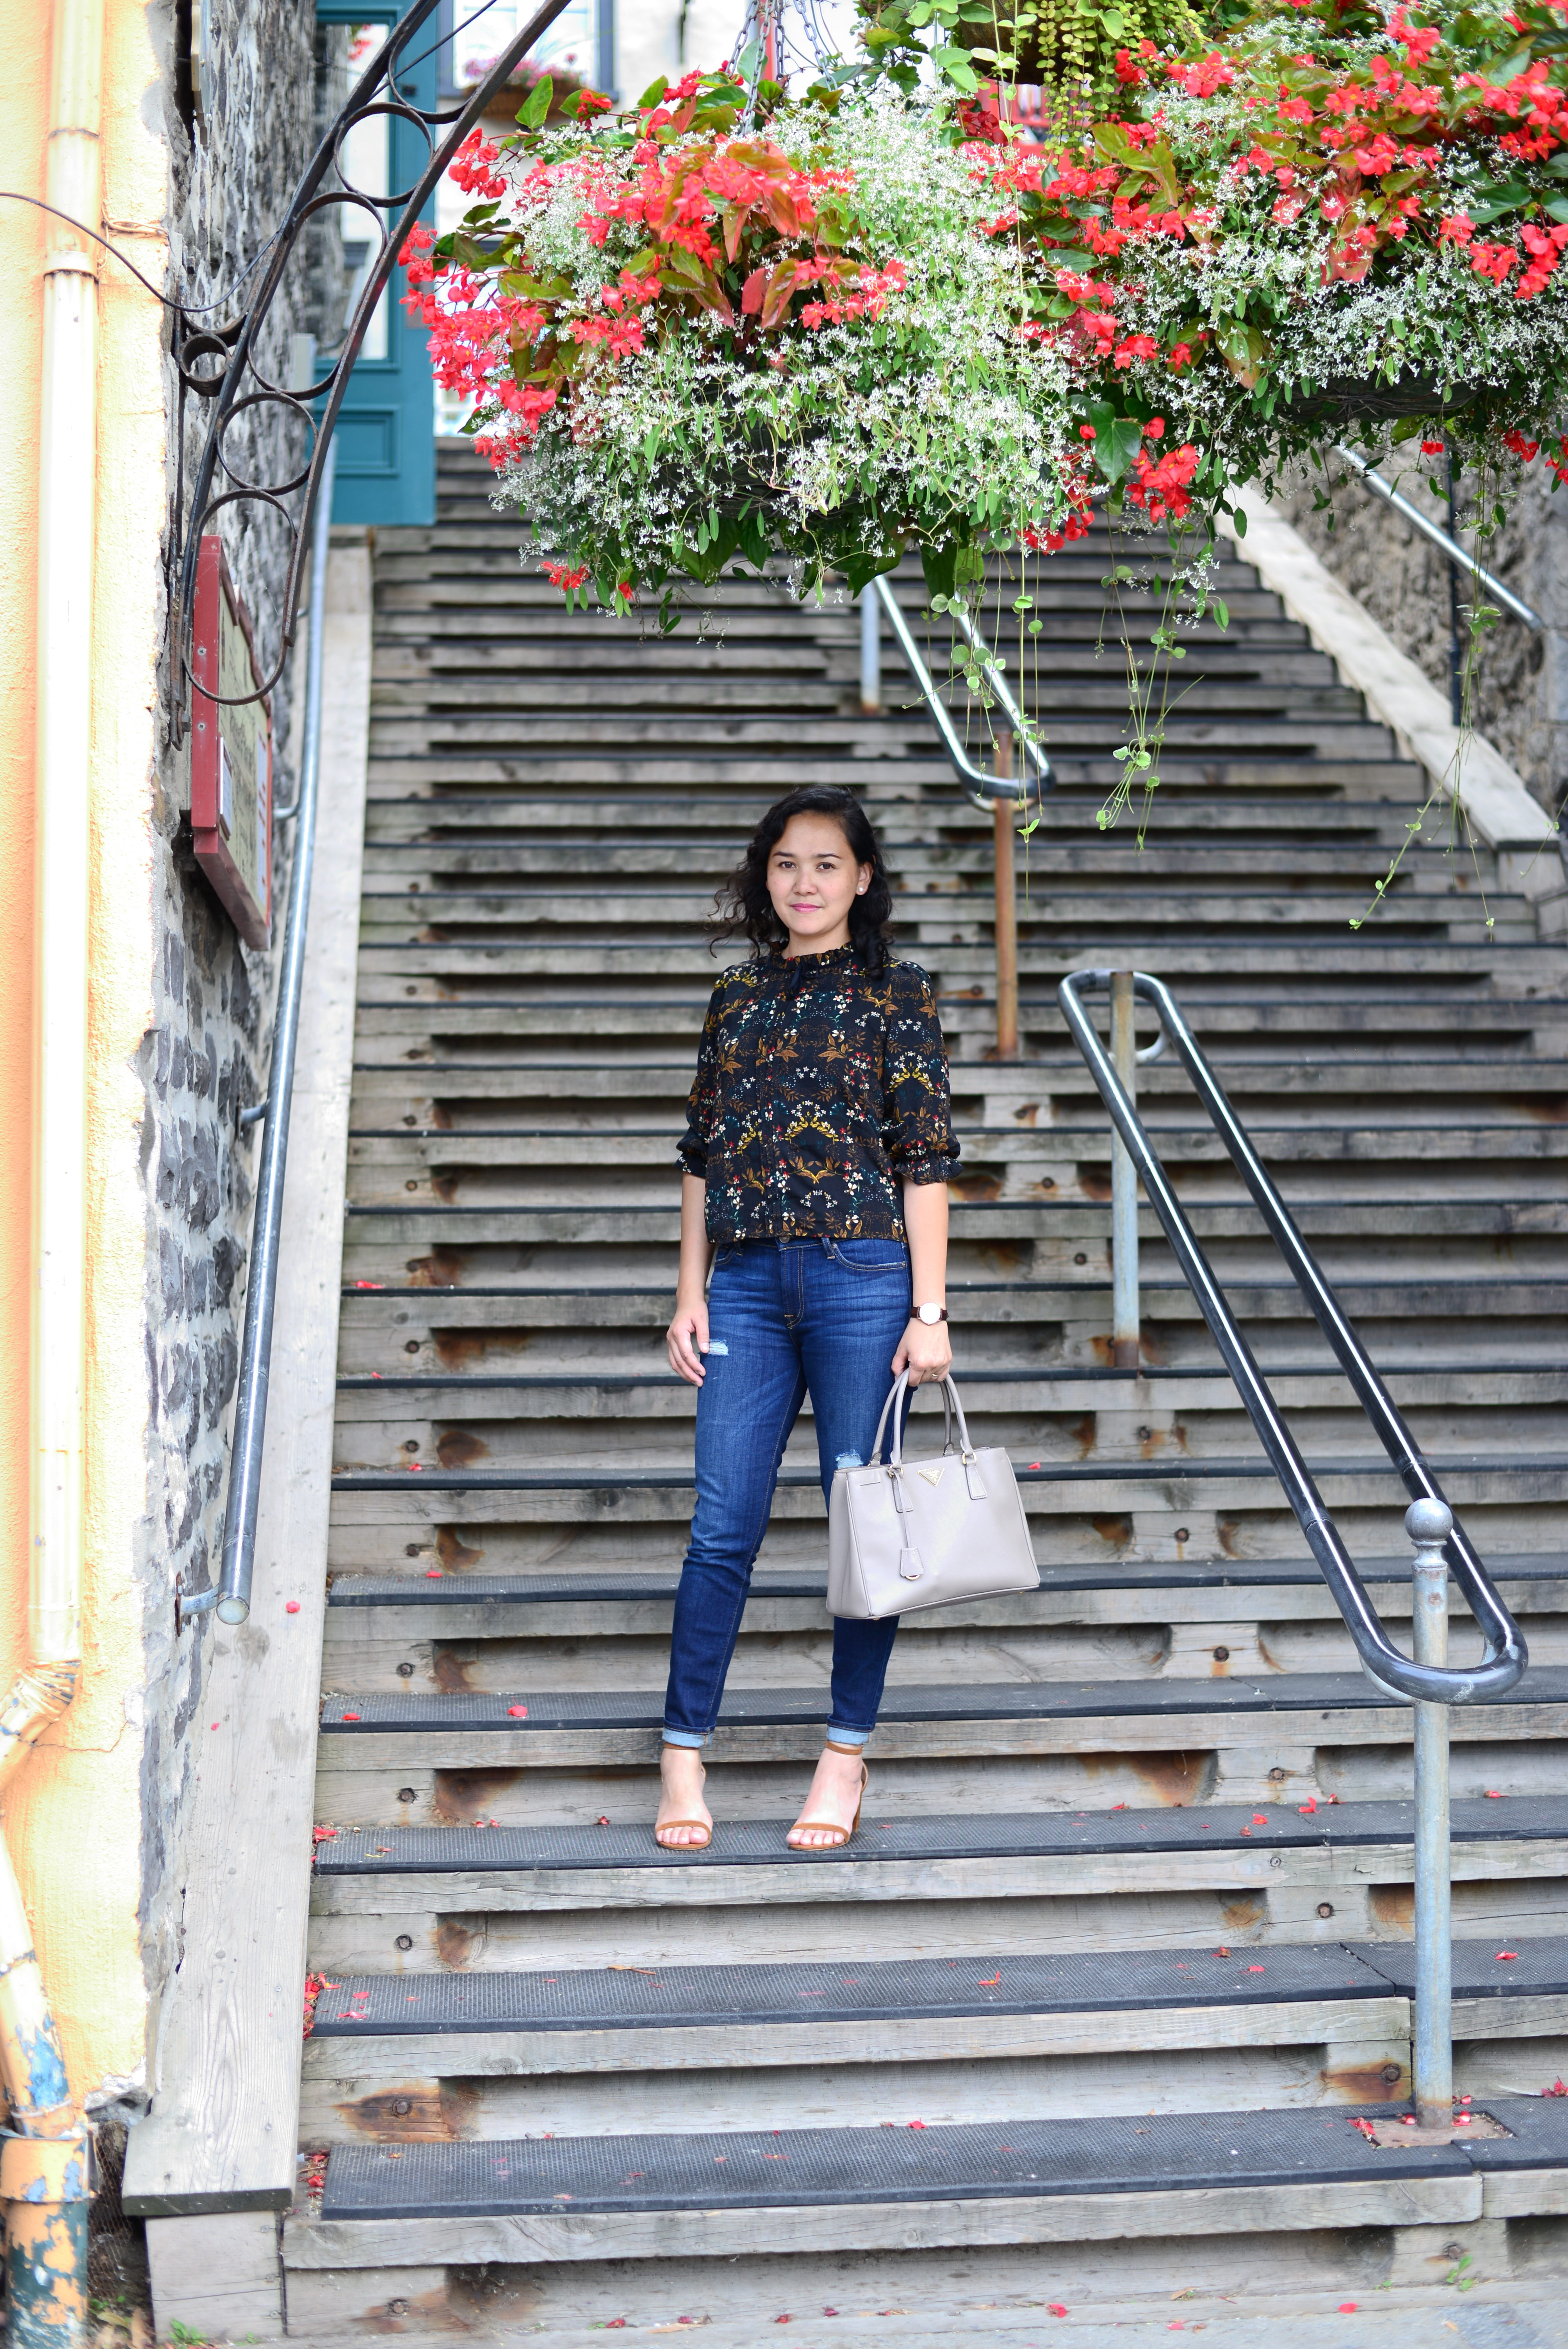 Floral Outfit, Stairs and Doors